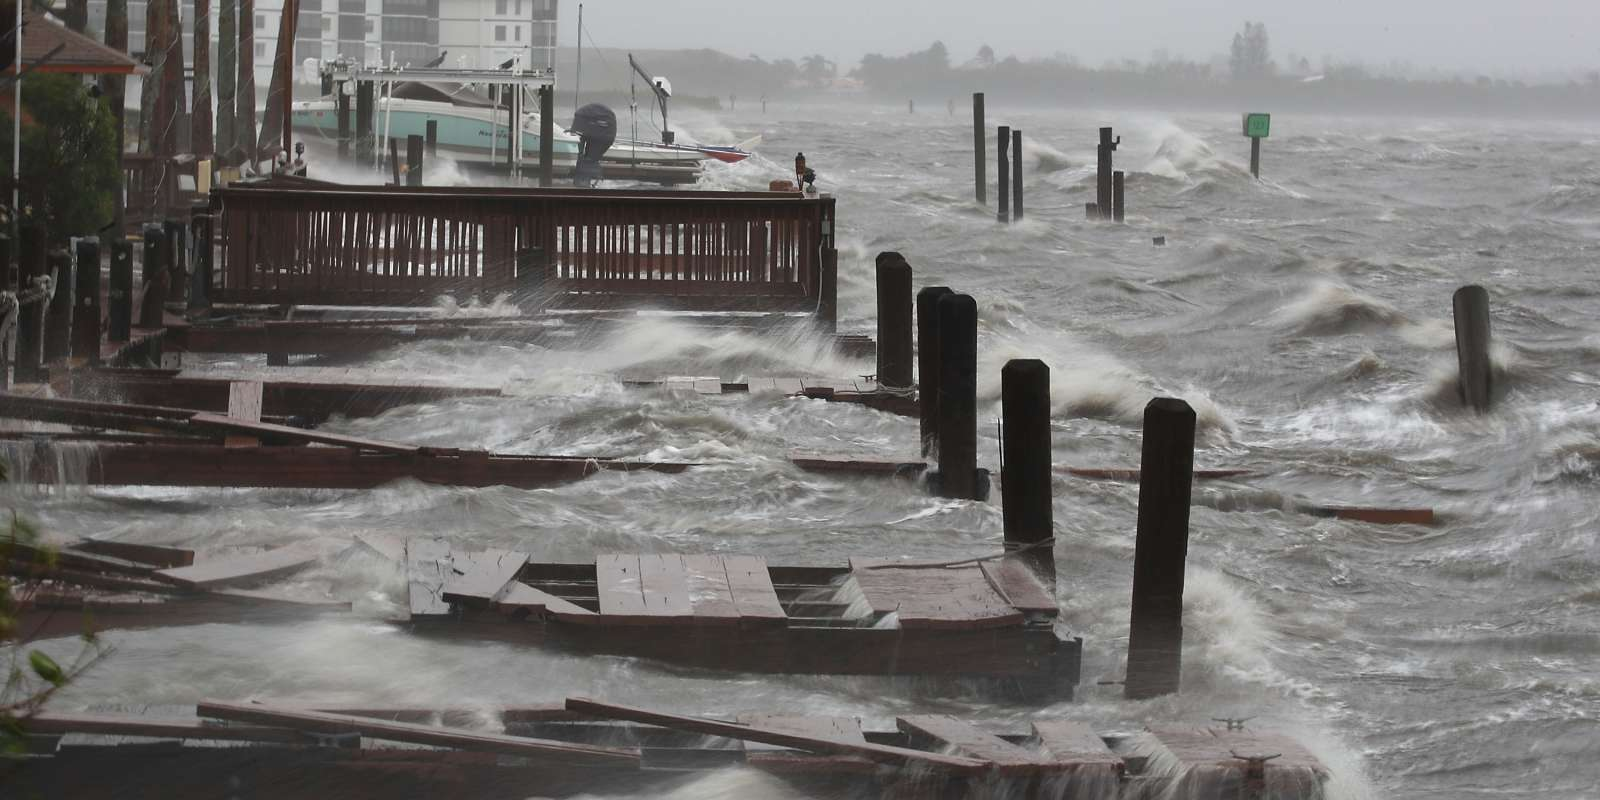 COCOA BEACH, FL - OCTOBER 07: Heavy waves caused by Hurricane Matthew pound the boat docks at the Sunset Bar and Grill, October 7, 2016 on Cocoa Beach, Florida. Hurricane Matthew passed by offshore as a catagory 3 hurricane bringing heavy winds and minor flooding. Mark Wilson/Getty Images/AFP == FOR NEWSPAPERS, INTERNET, TELCOS & TELEVISION USE ONLY ==